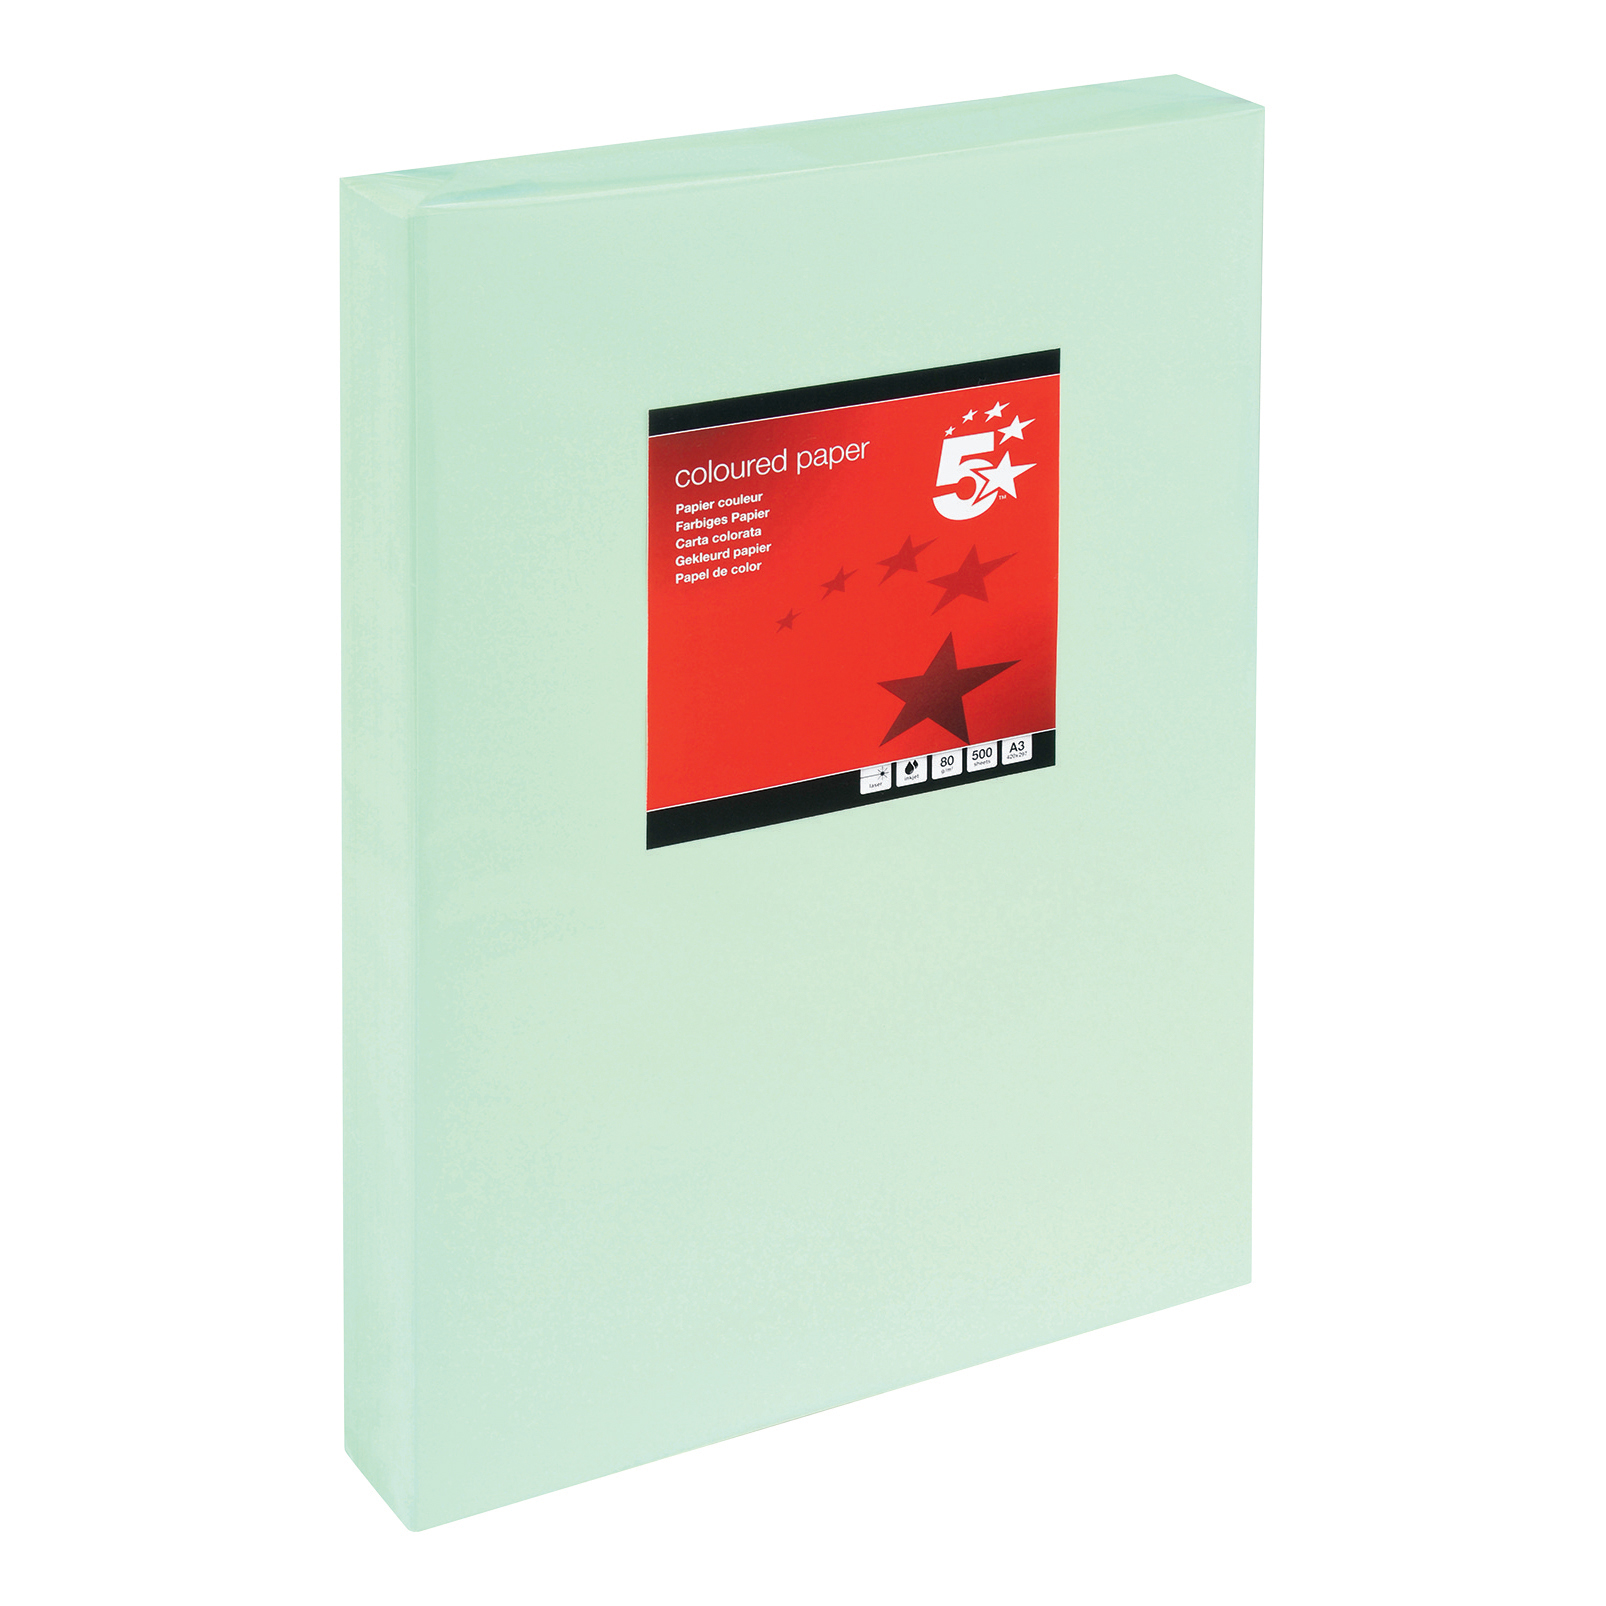 A3 5 Star Office Coloured Copier Paper Multifunctional Ream-Wrapped 80gsm A3 Light Green 500 Sheets